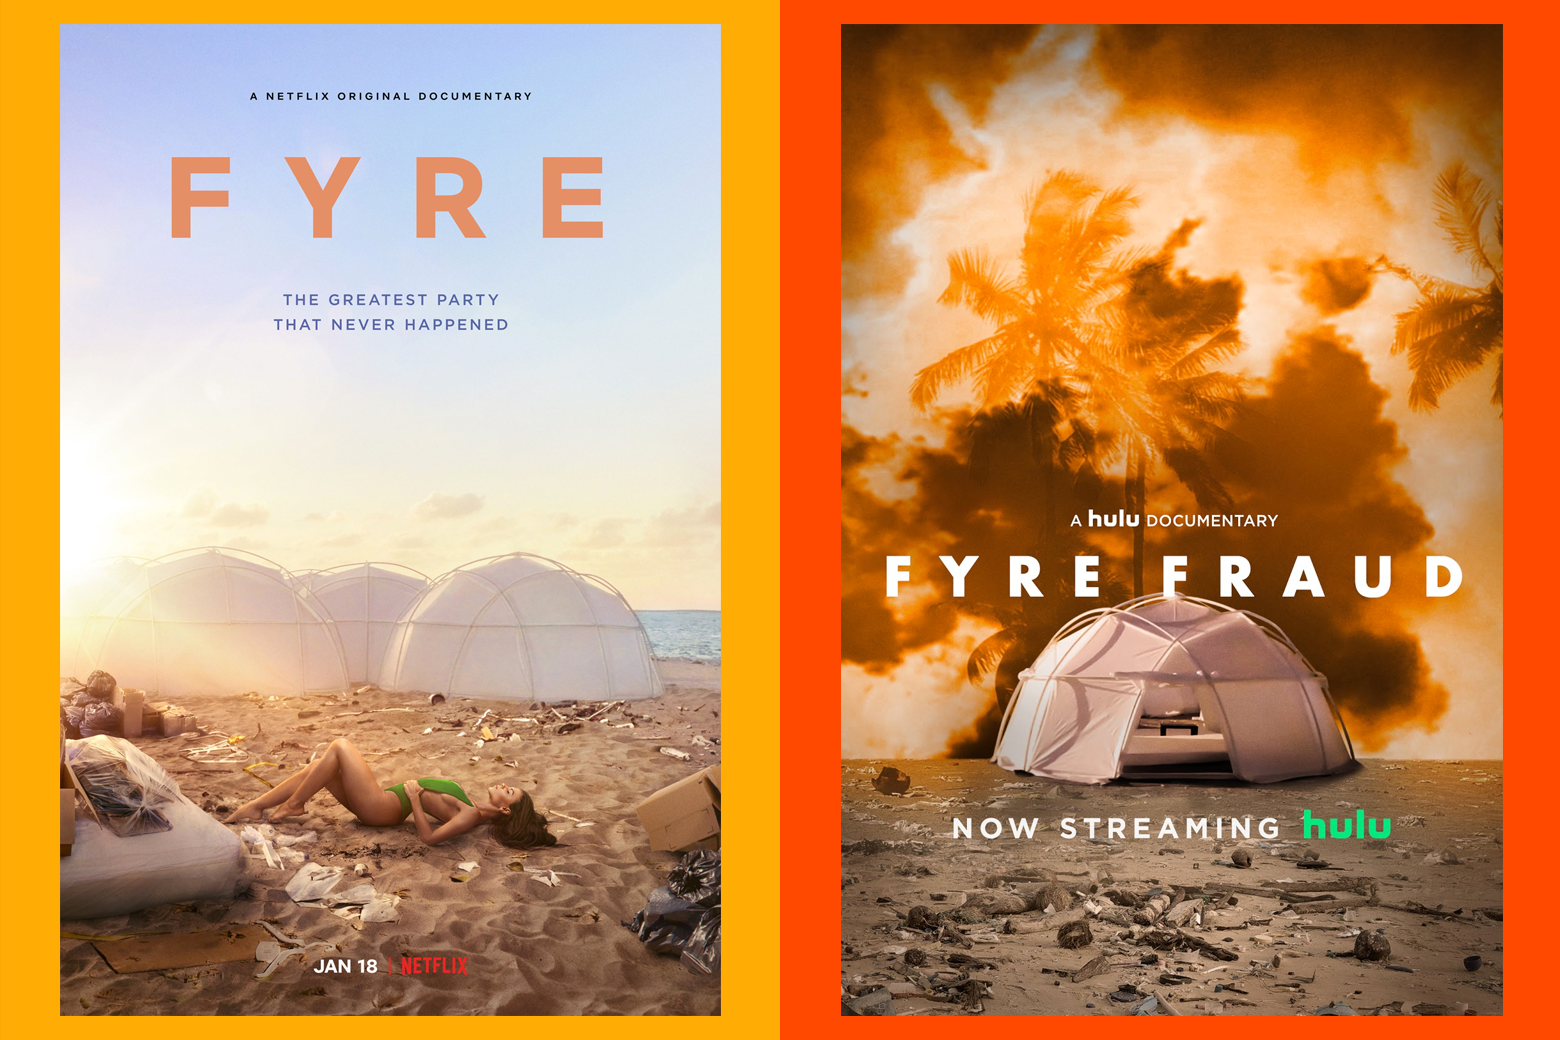 The posters for Netflix's Fyre and Hulu's Fyre Fraud, side by side.